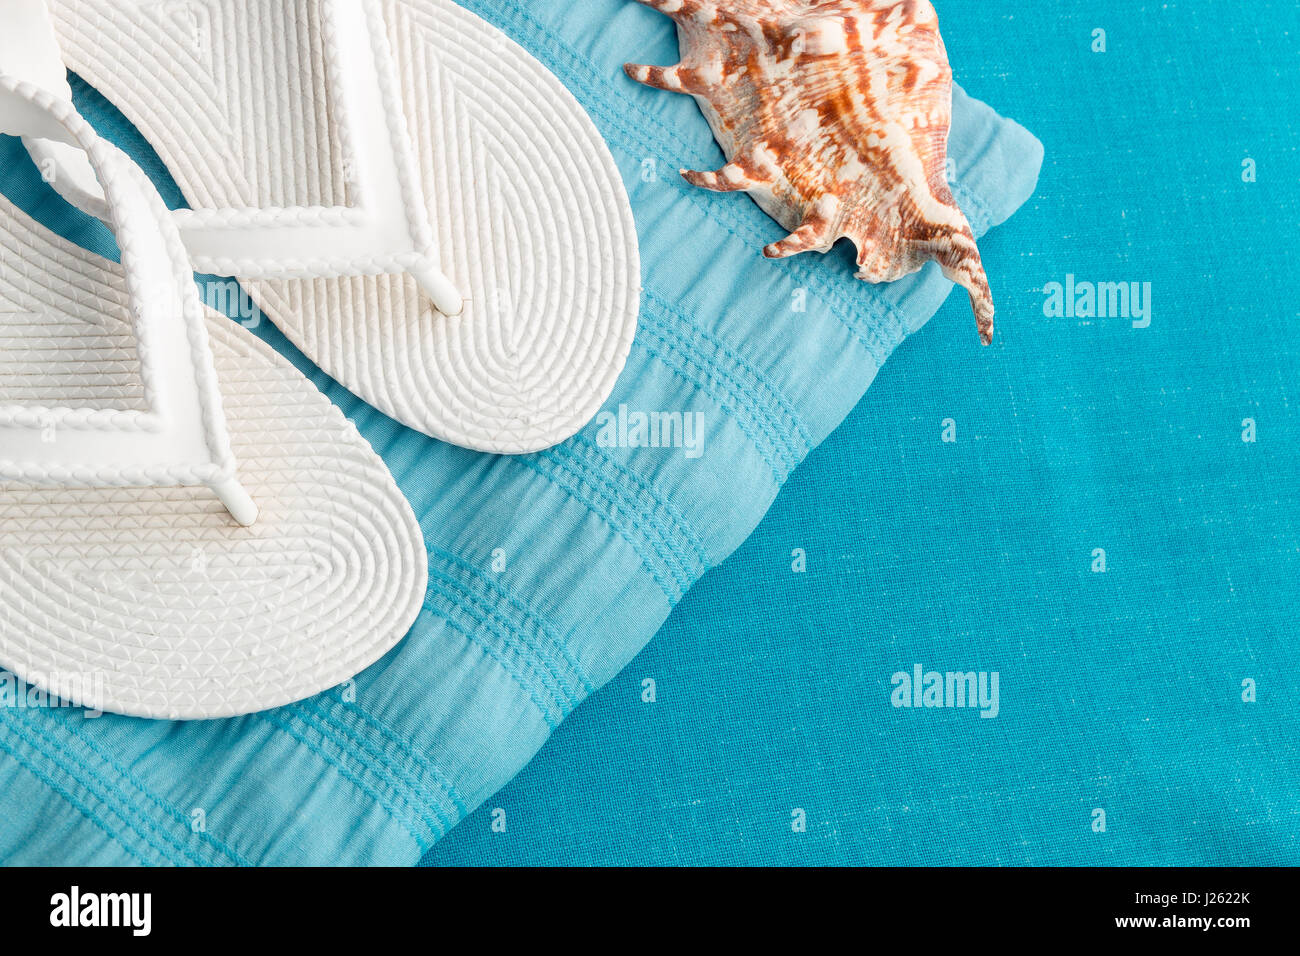 6f4d04829 White flip flop near seashell on blue background. Top view Stock ...